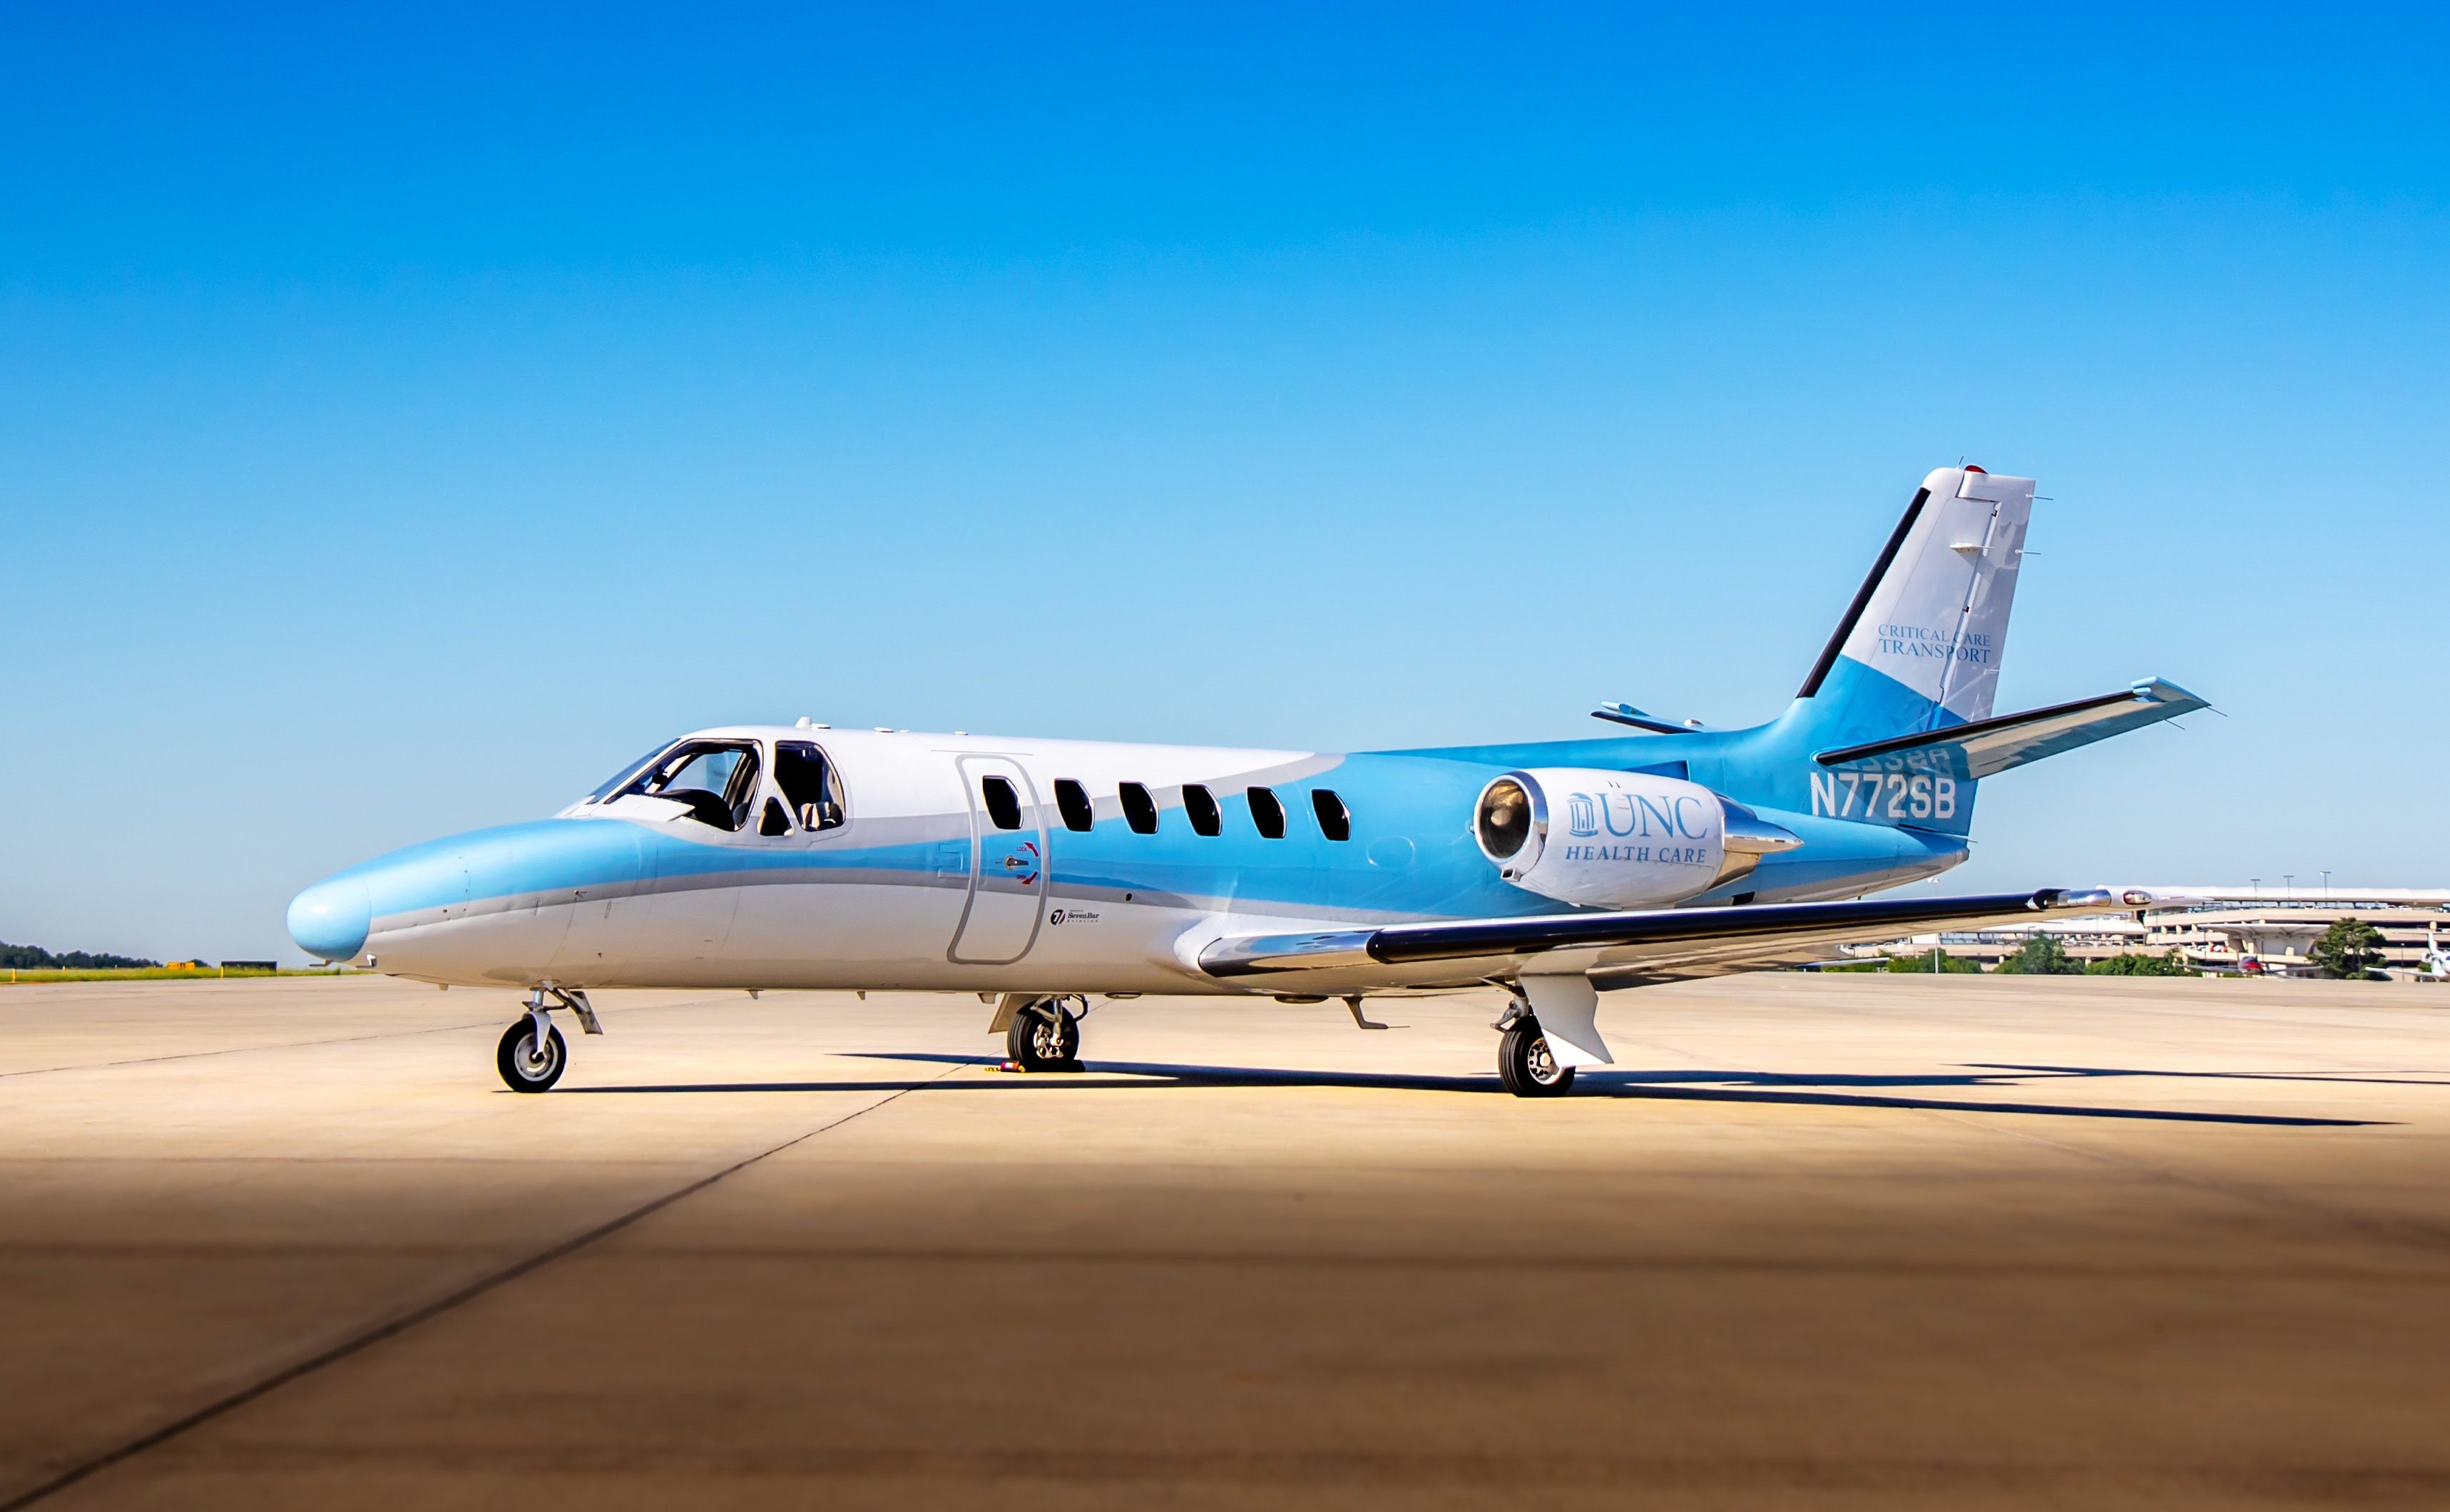 Aircraft Listing - Citation II listed for sale